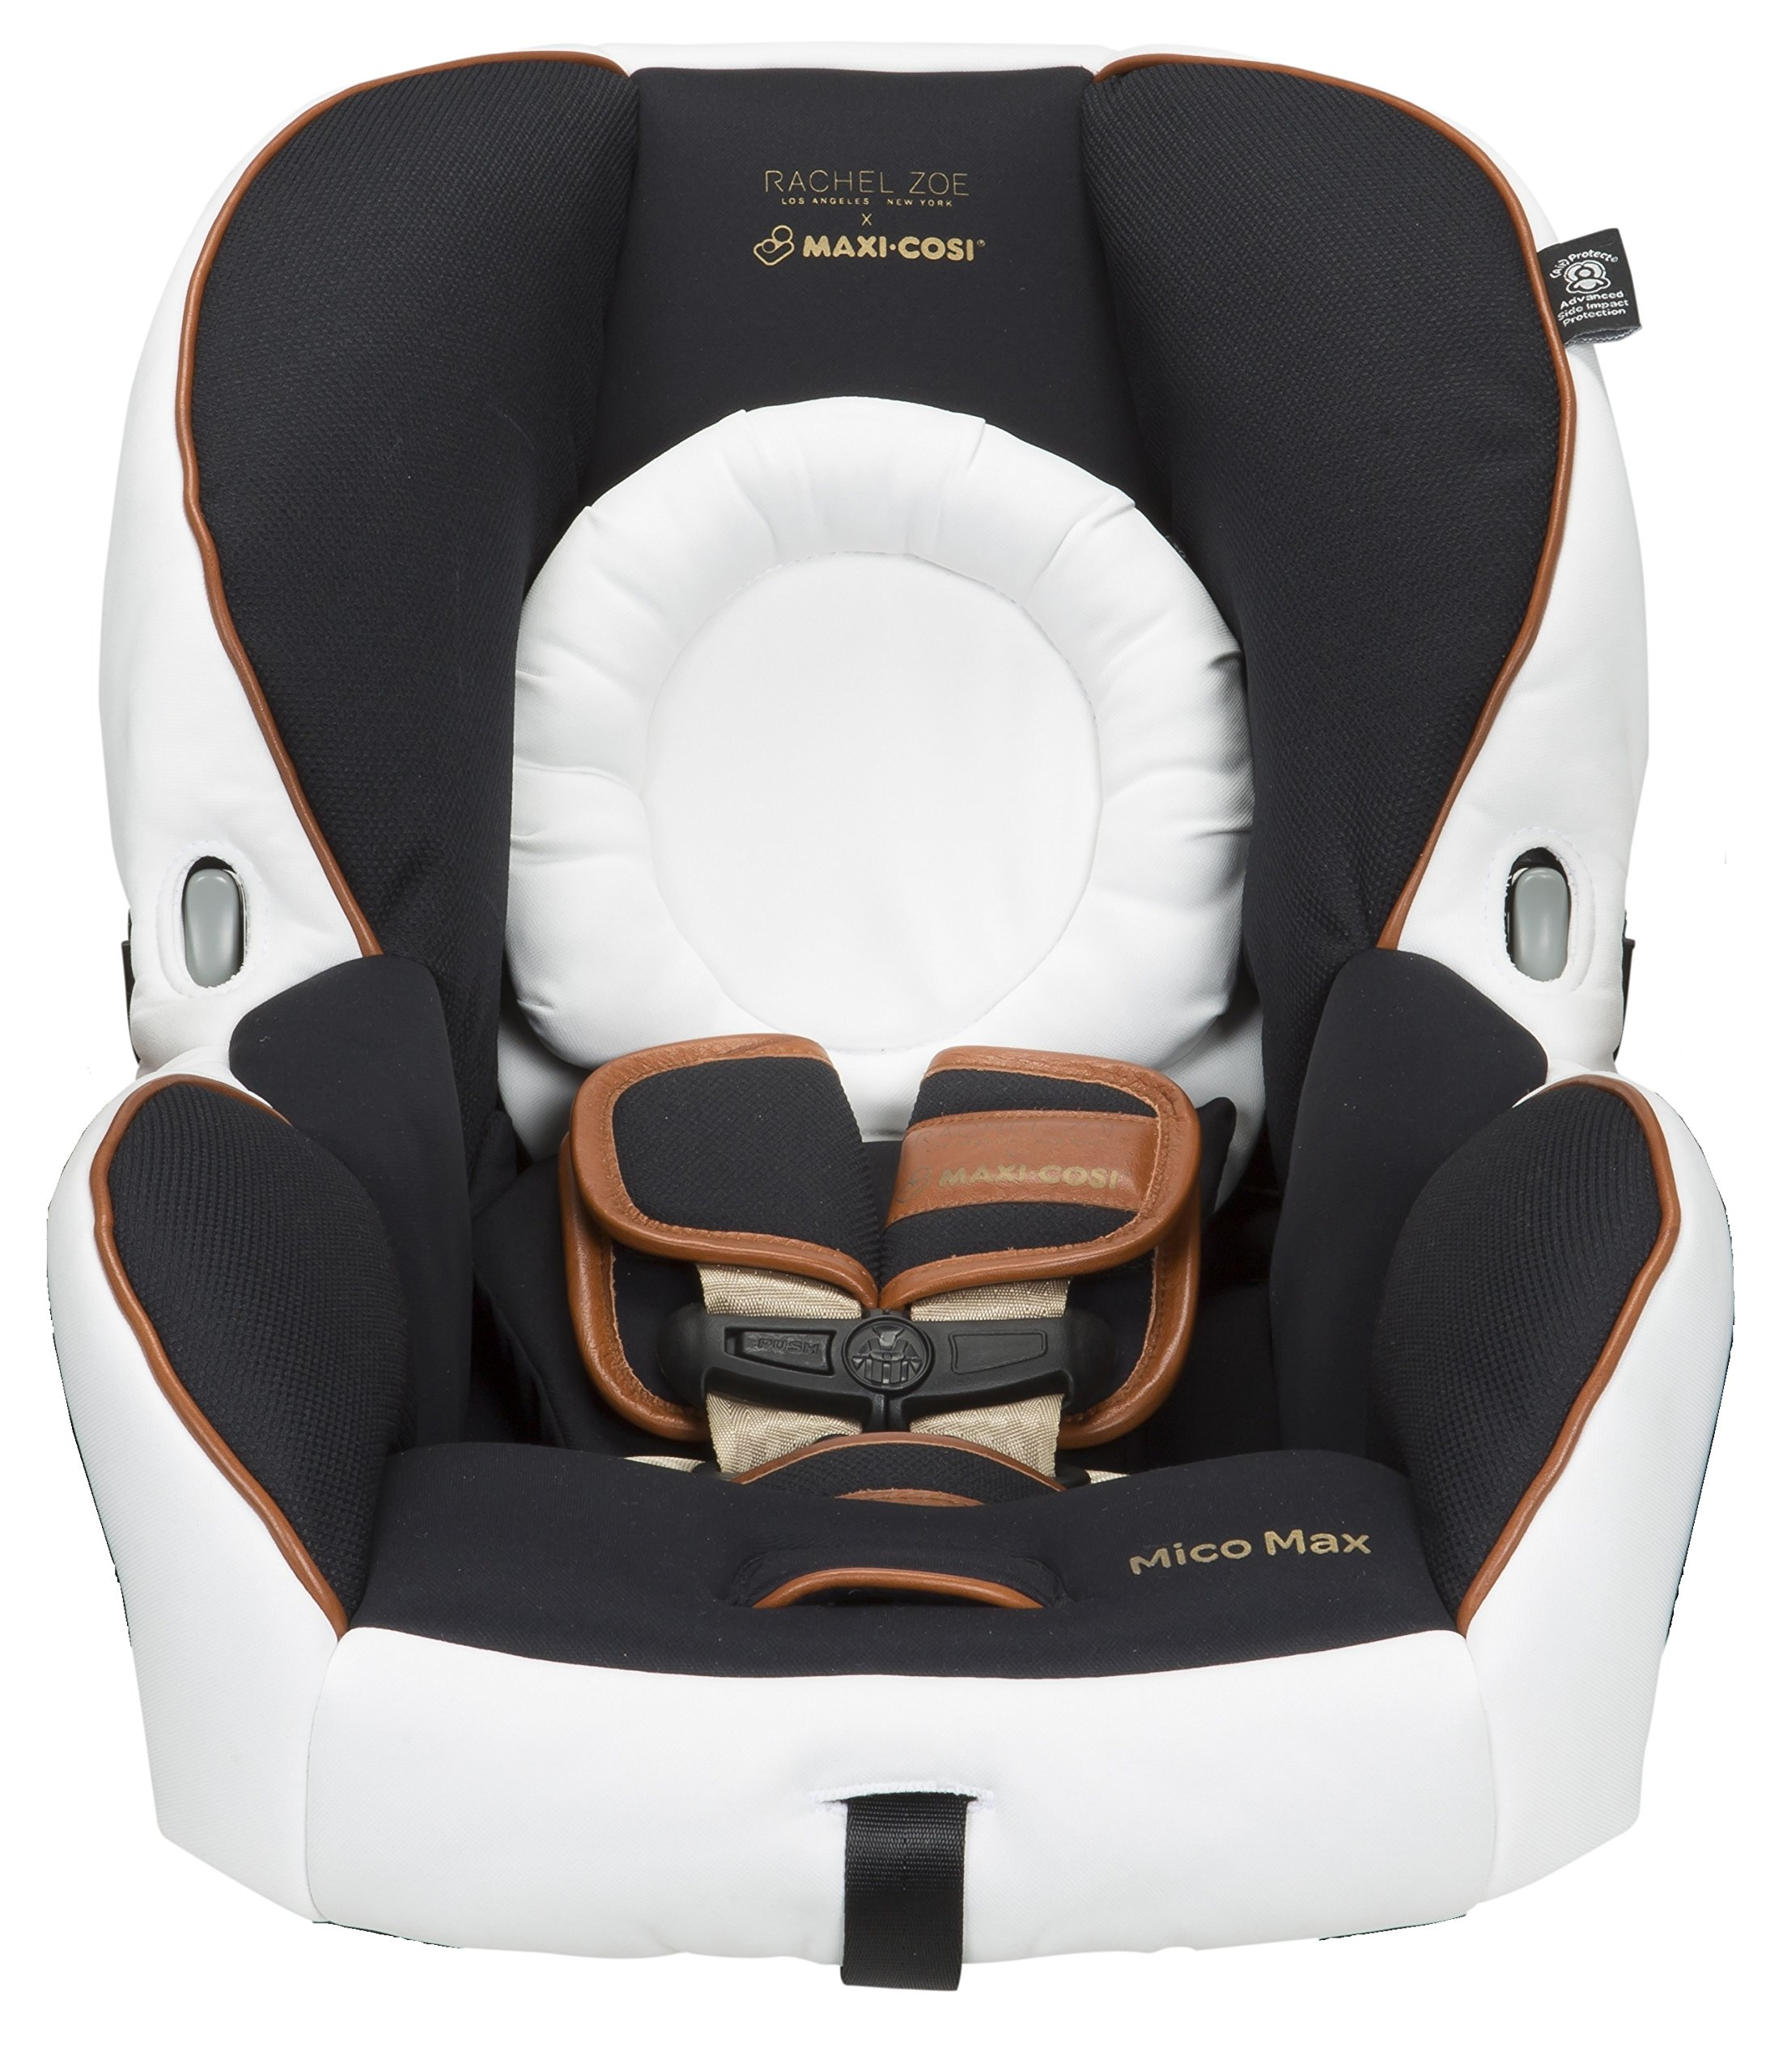 Maxi-Cosi Mico Max 30 Fashion Kit, Special Edition Rachel Zoe (Car Seat Sold Separately) by Maxi-Cosi (Image #1)